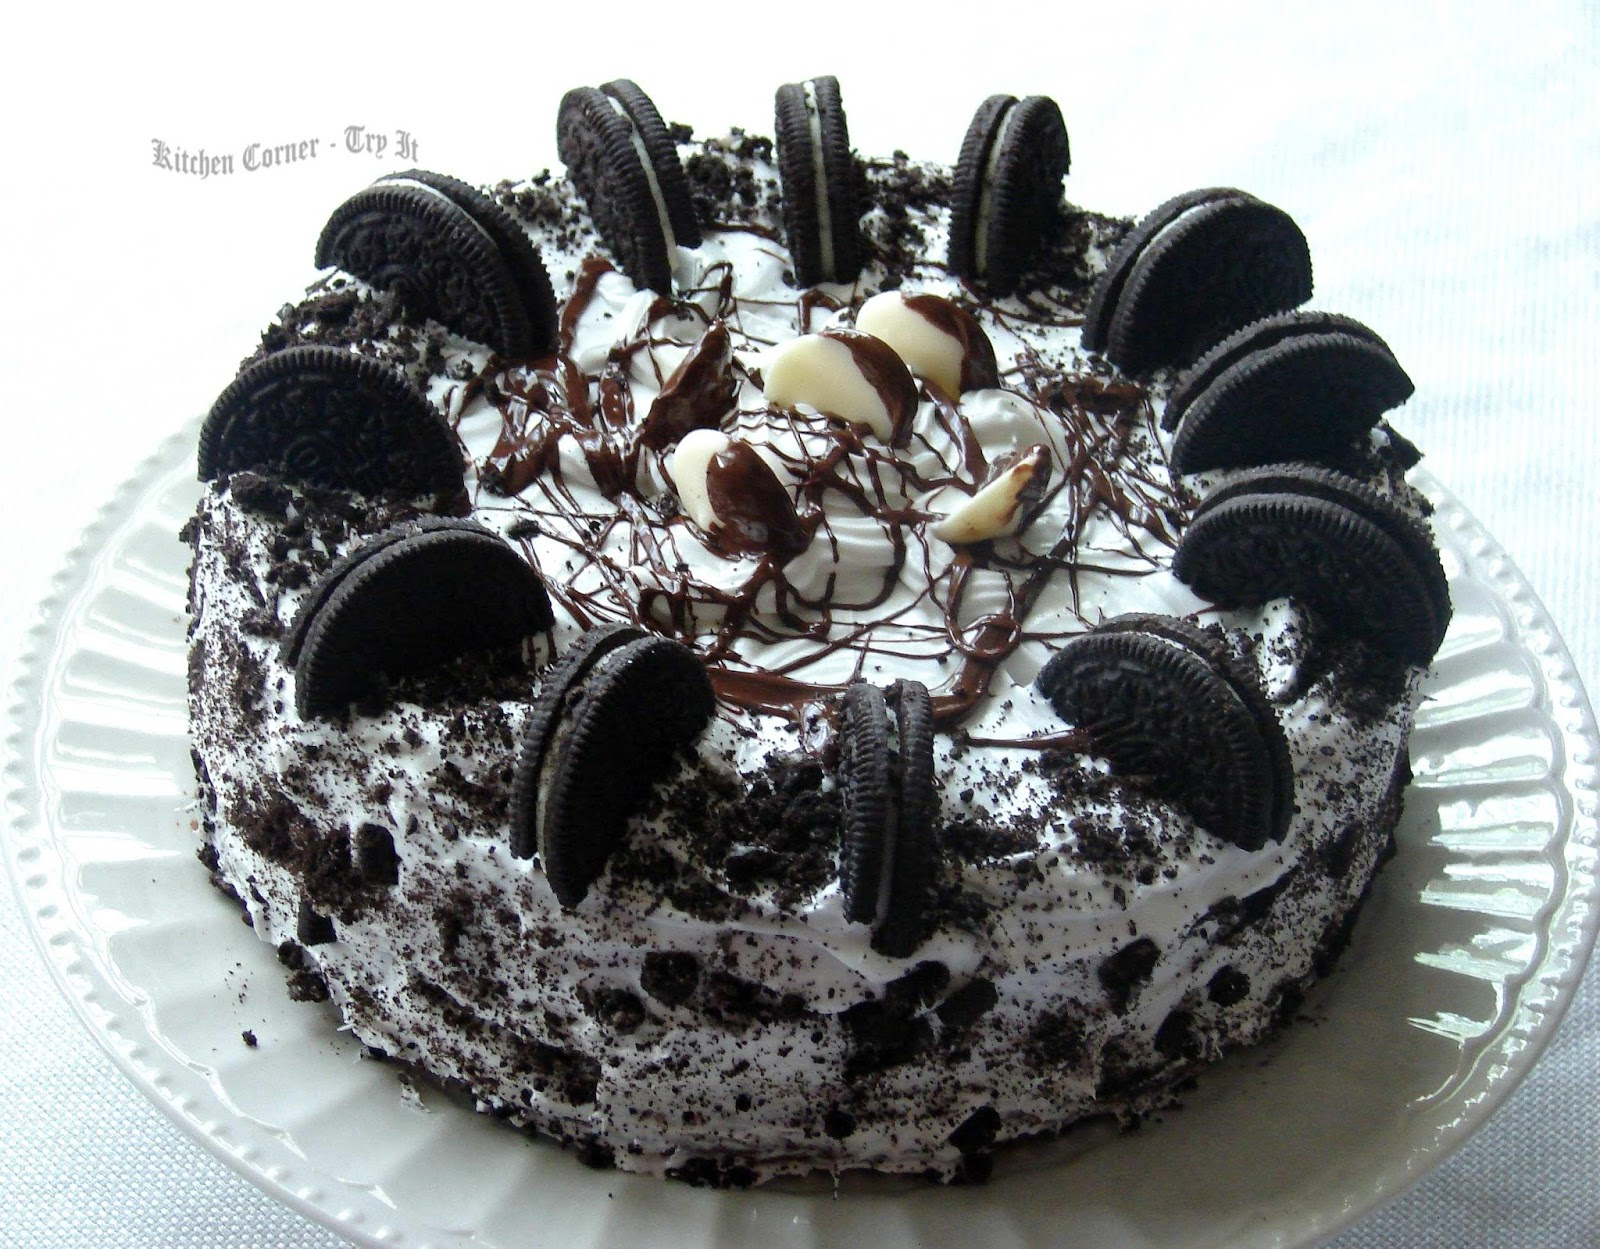 Kitchen Corner-Try It: Oreo Cookie Cake